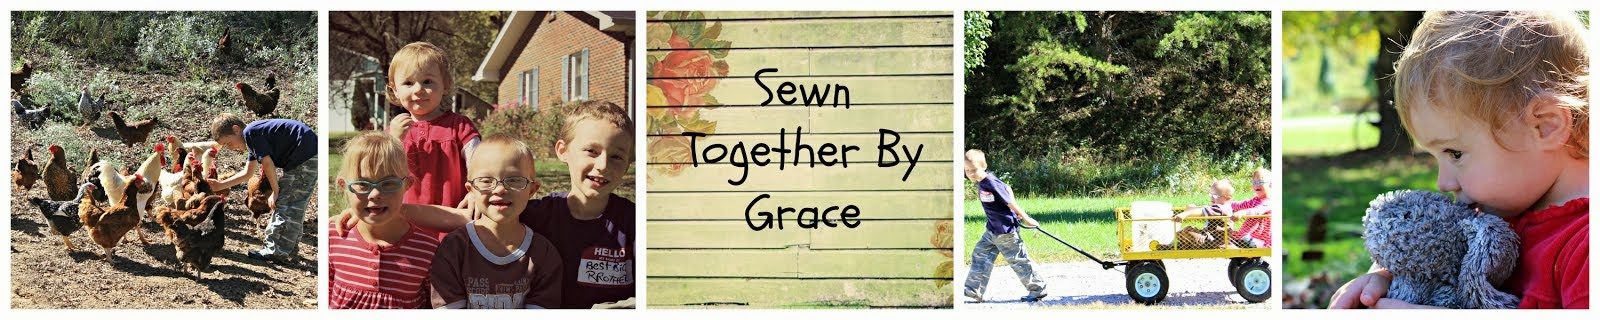 Sewn Together By Grace